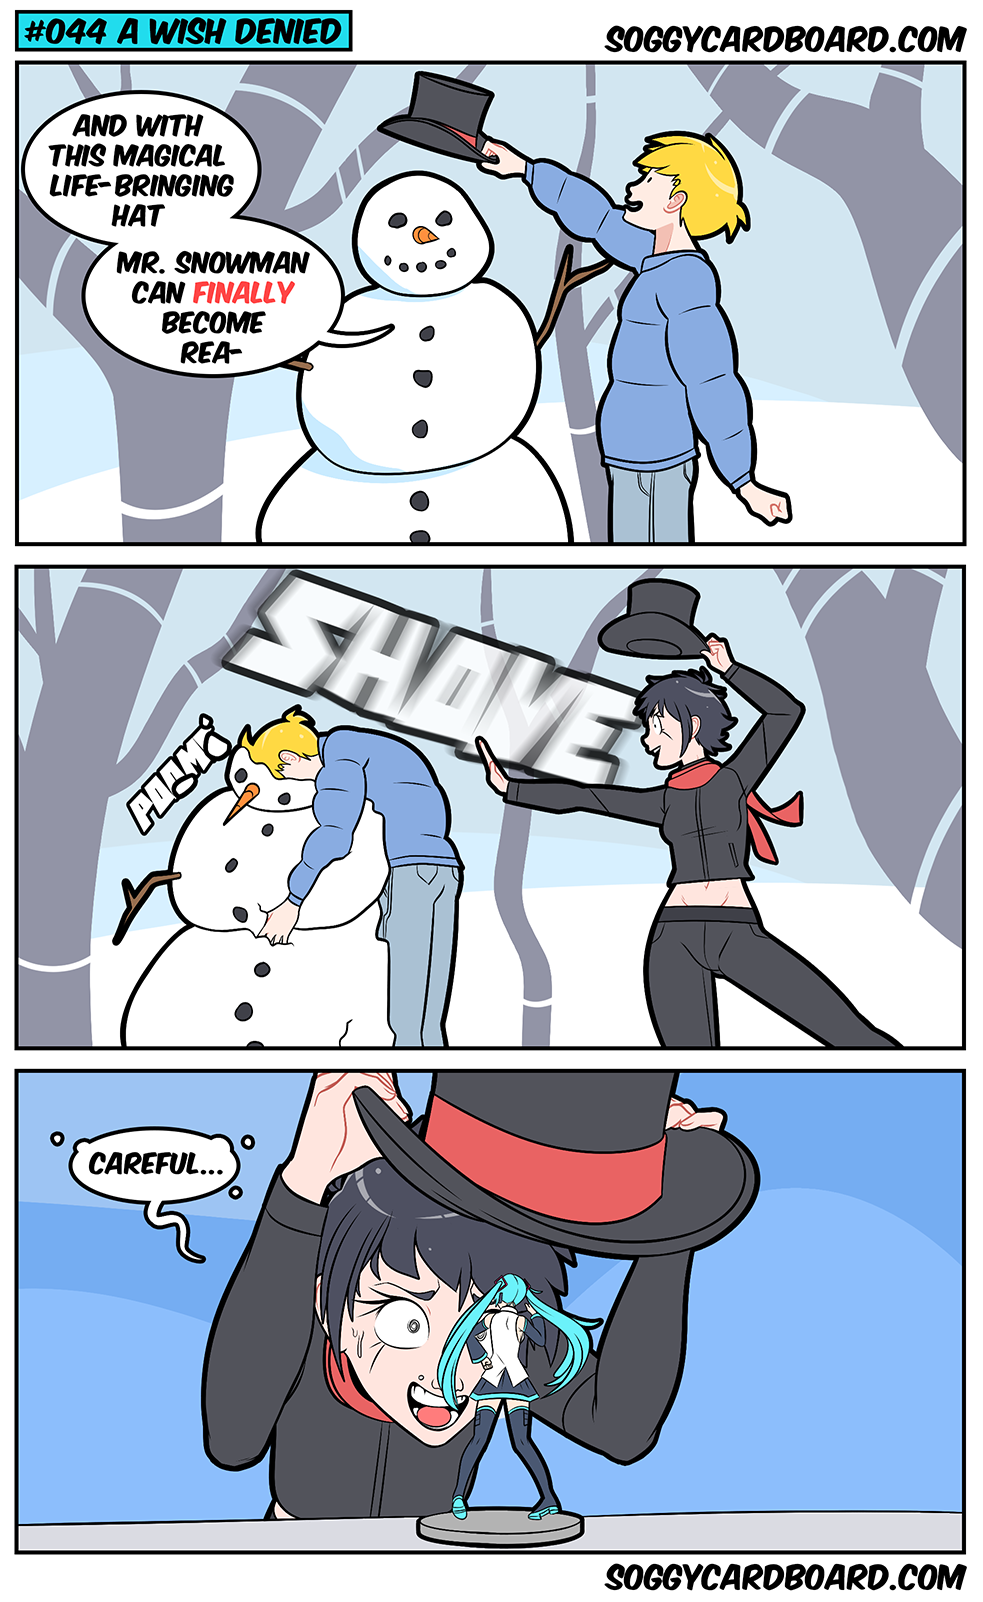 Joey you short sided fool if you made the snowman a waifu Katherine woulda let you have it